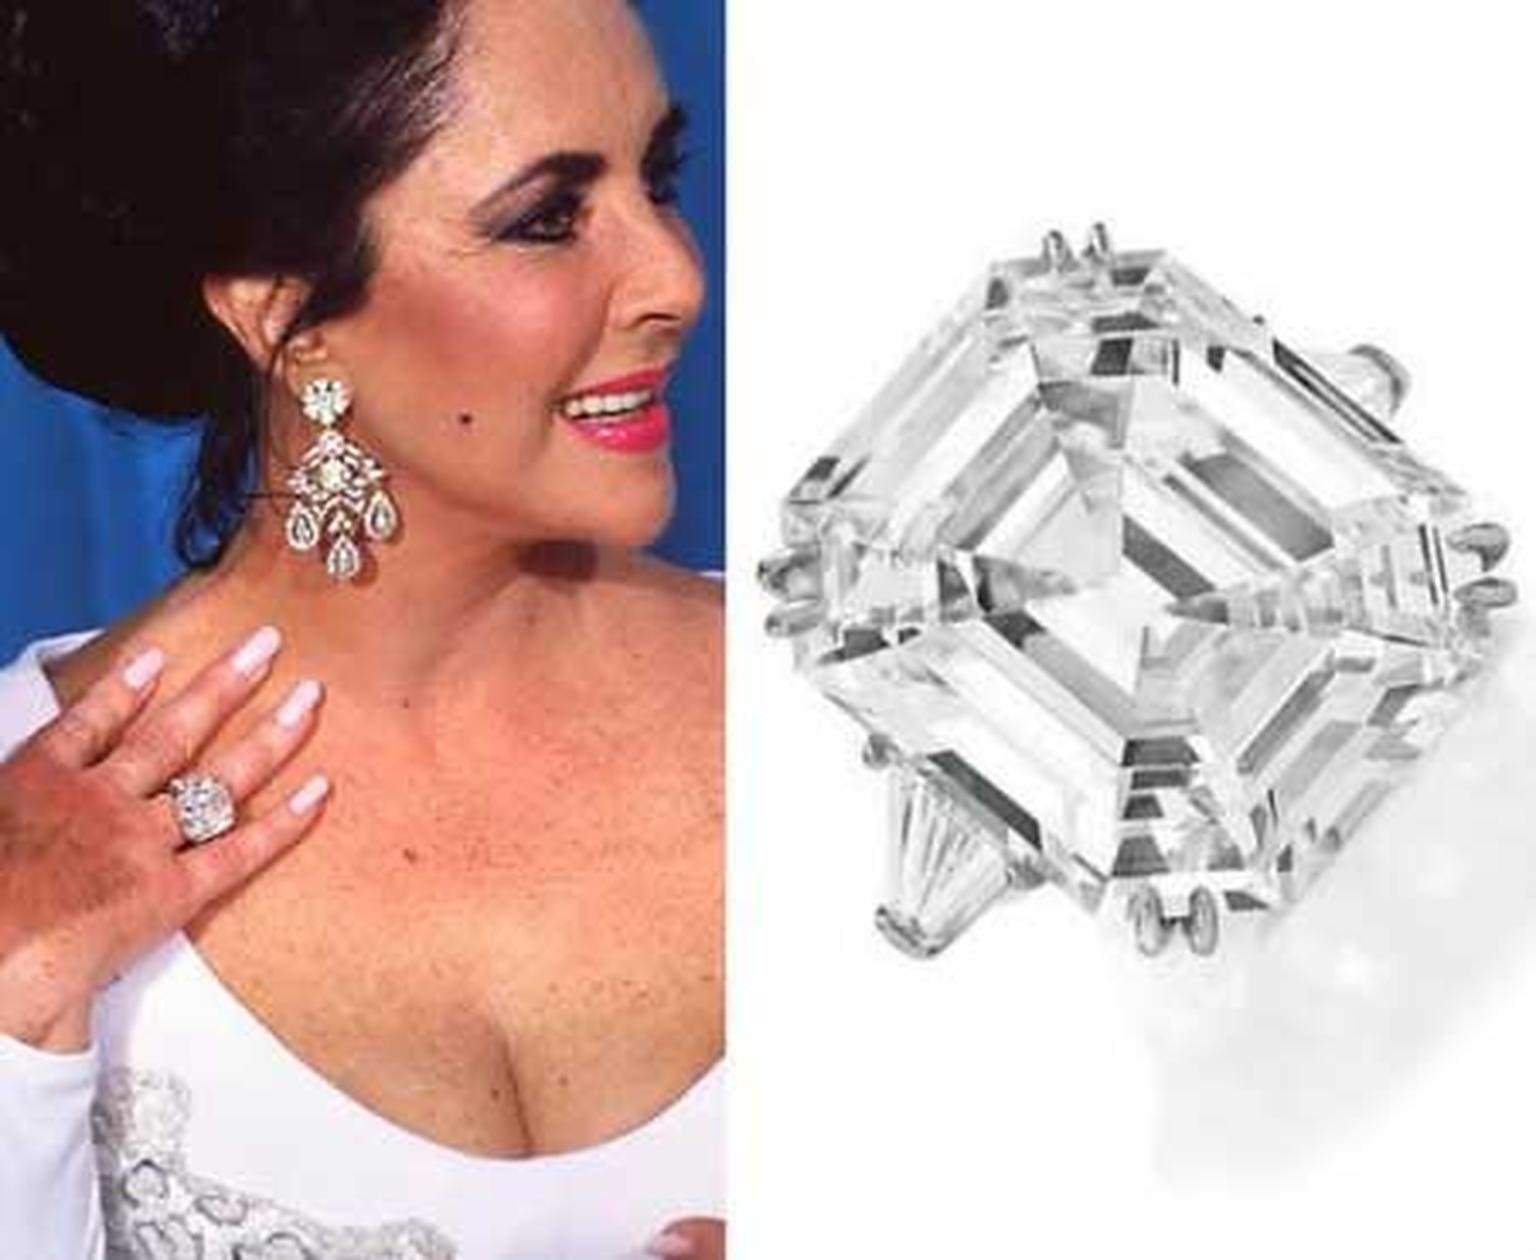 The most famous Asscher-cut diamond of them all was worn by screen legend Elizabeth Taylor. The 33.19-carat Krupp diamond (now more commonly known as the Elizabeth Taylor diamond) was bought for the actress by Richard Burton in 1968.